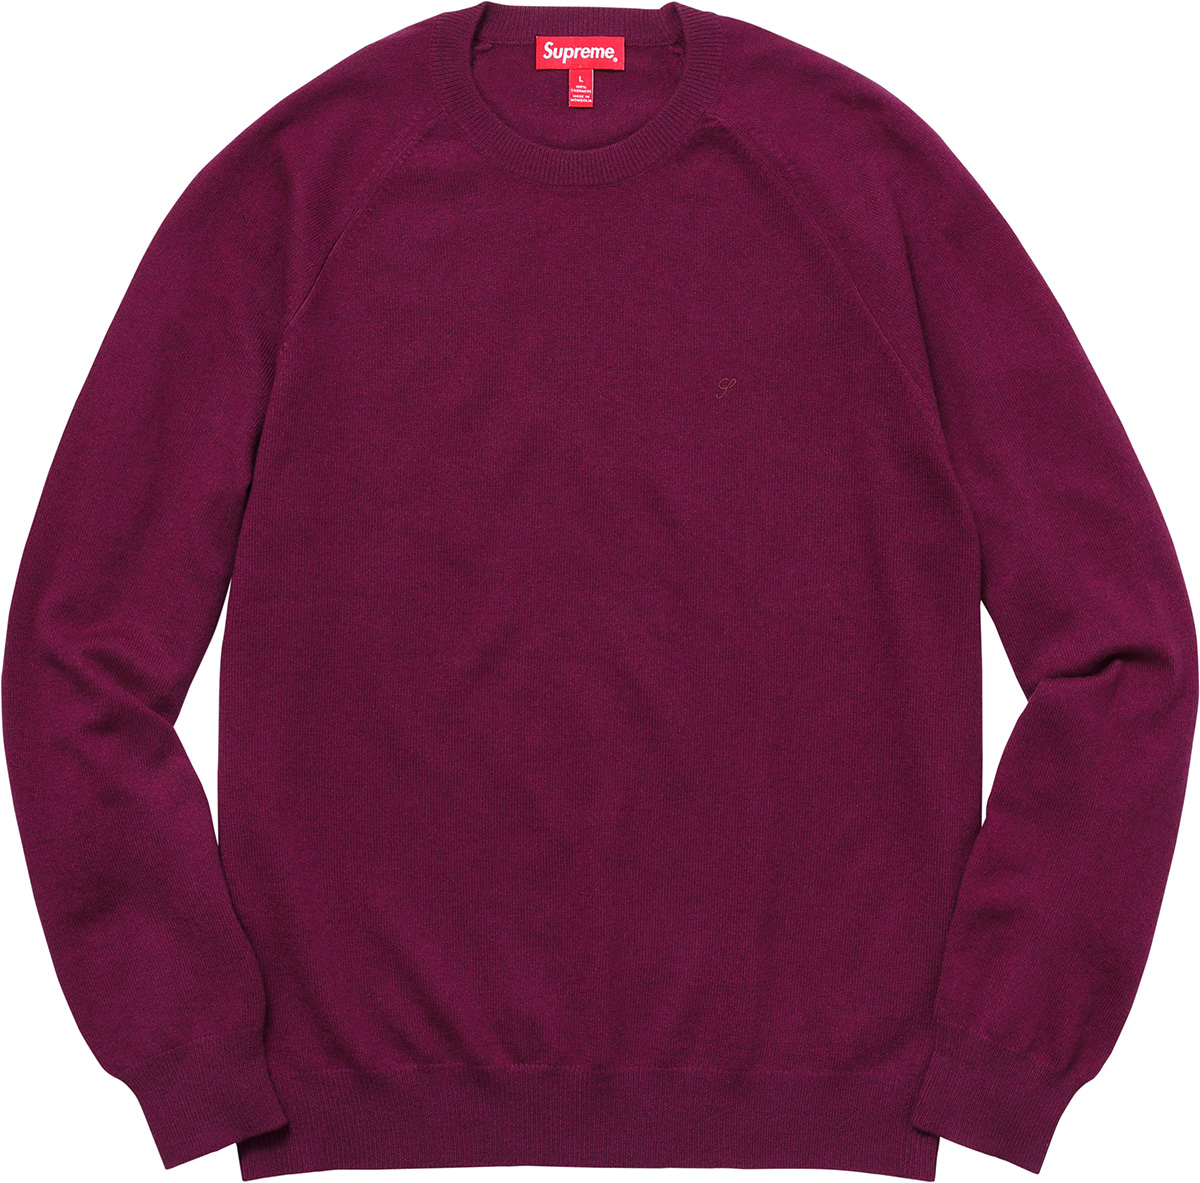 supreme-2017aw-fall-winter-cashmere-sweater